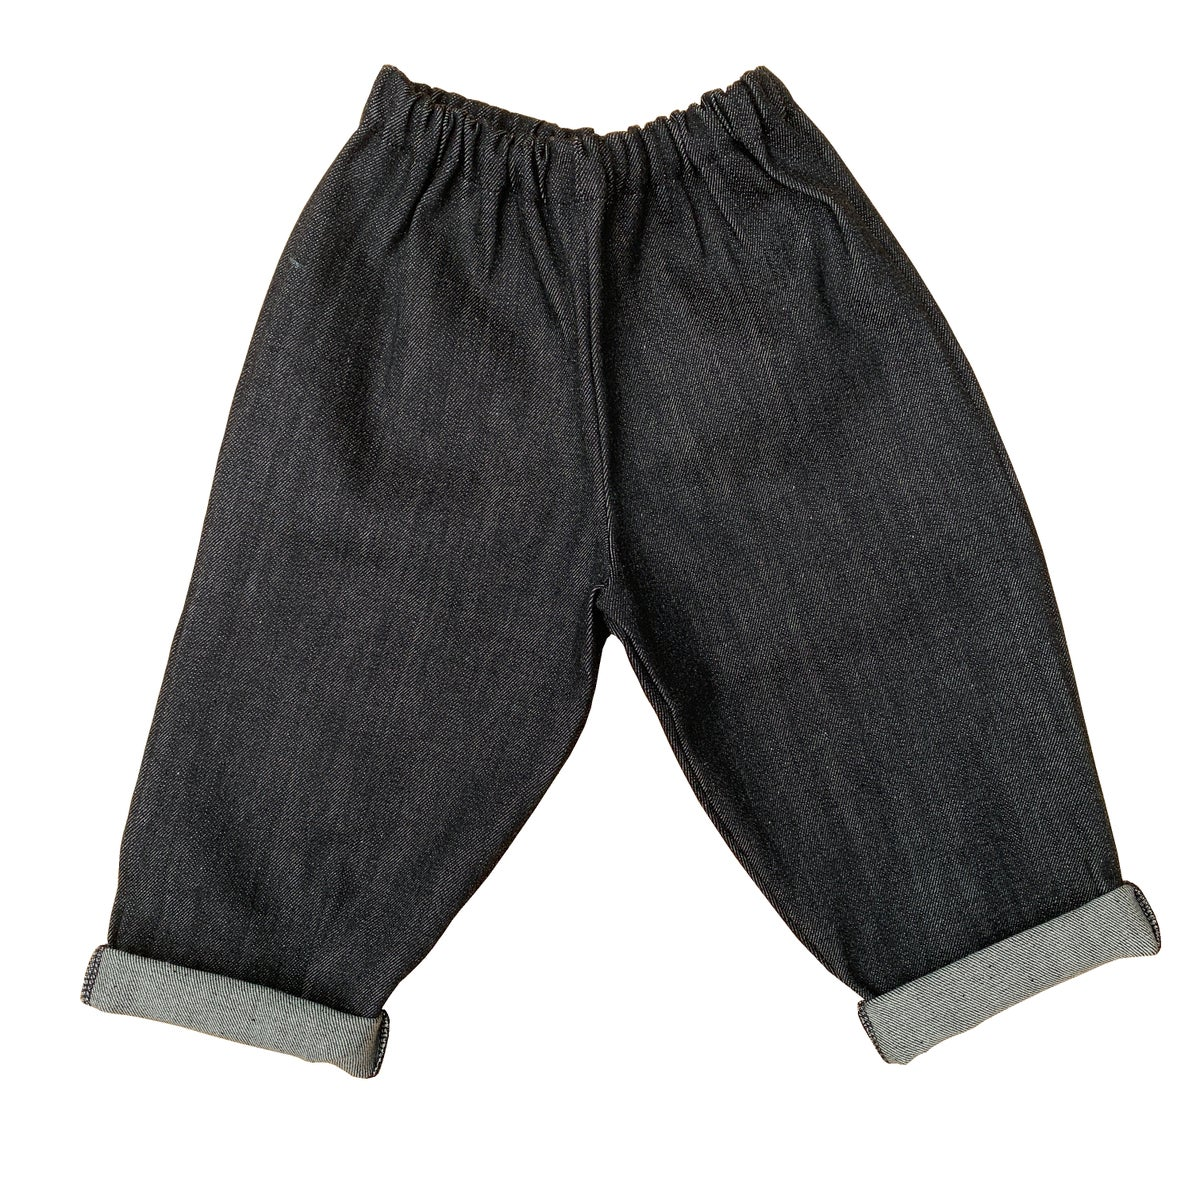 Image of Pippins - Toddler Jeans In Raw Black